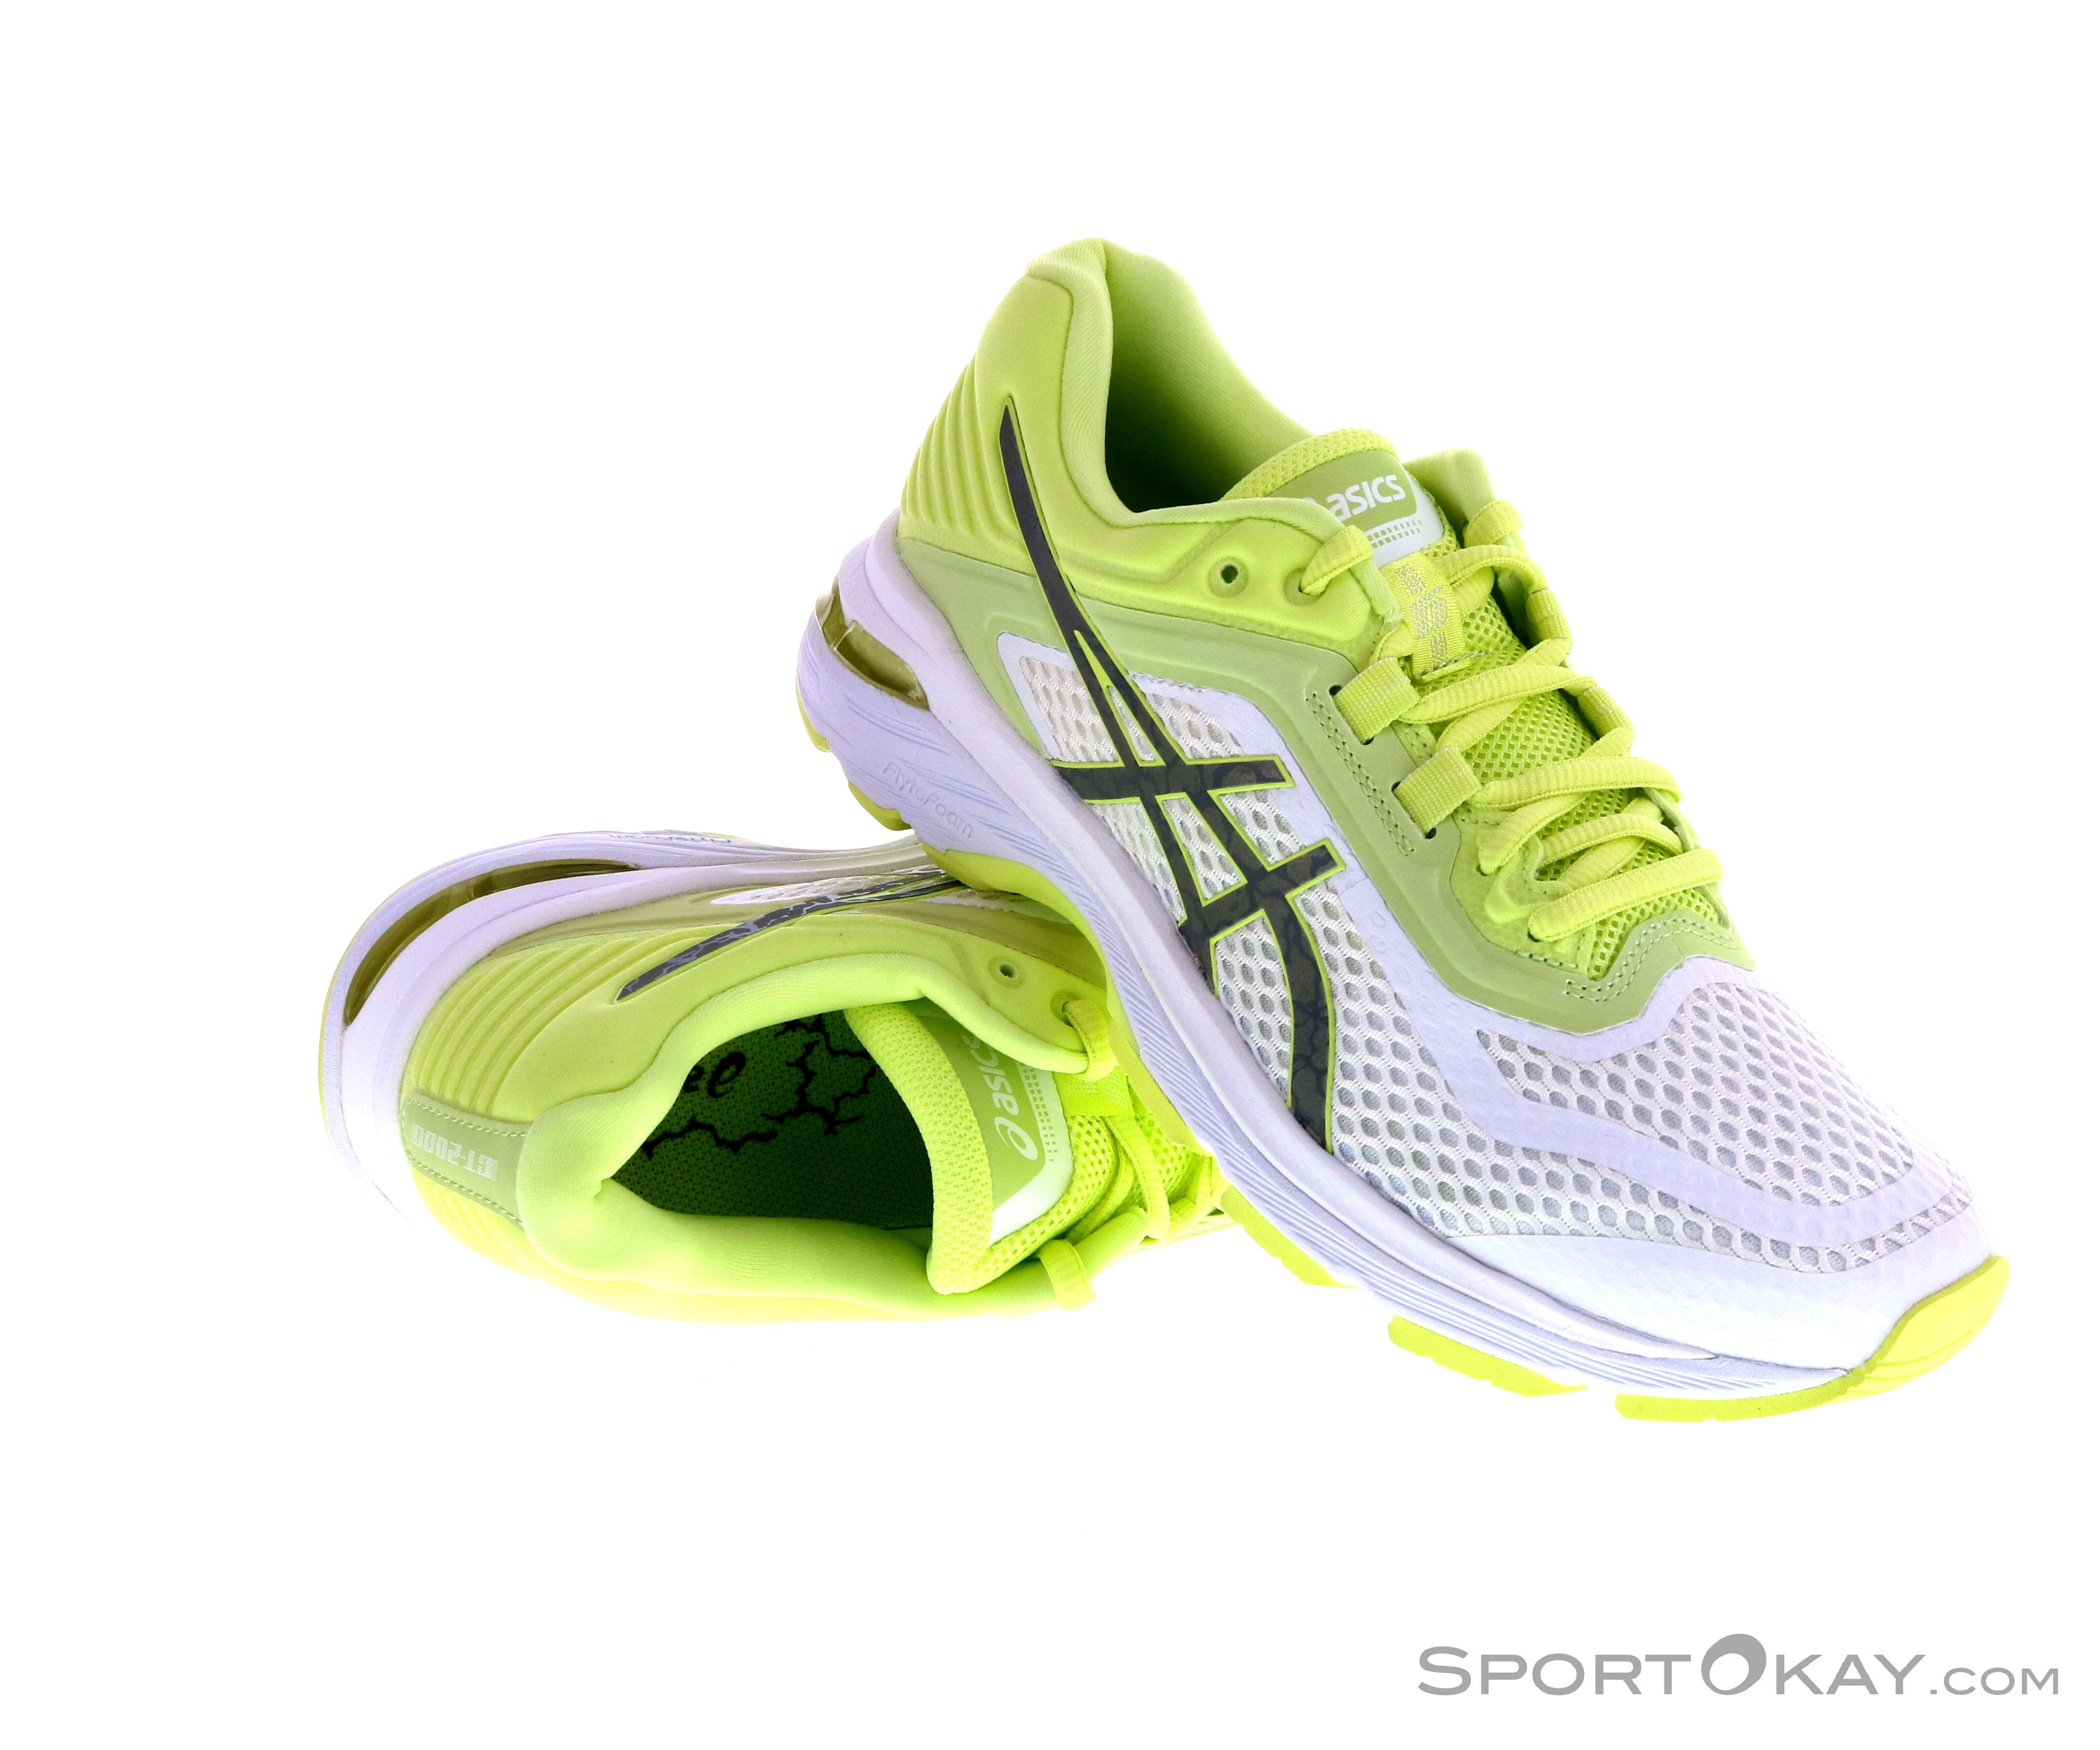 Asics GT 2000 6 Lite Show Womens Running Shoes